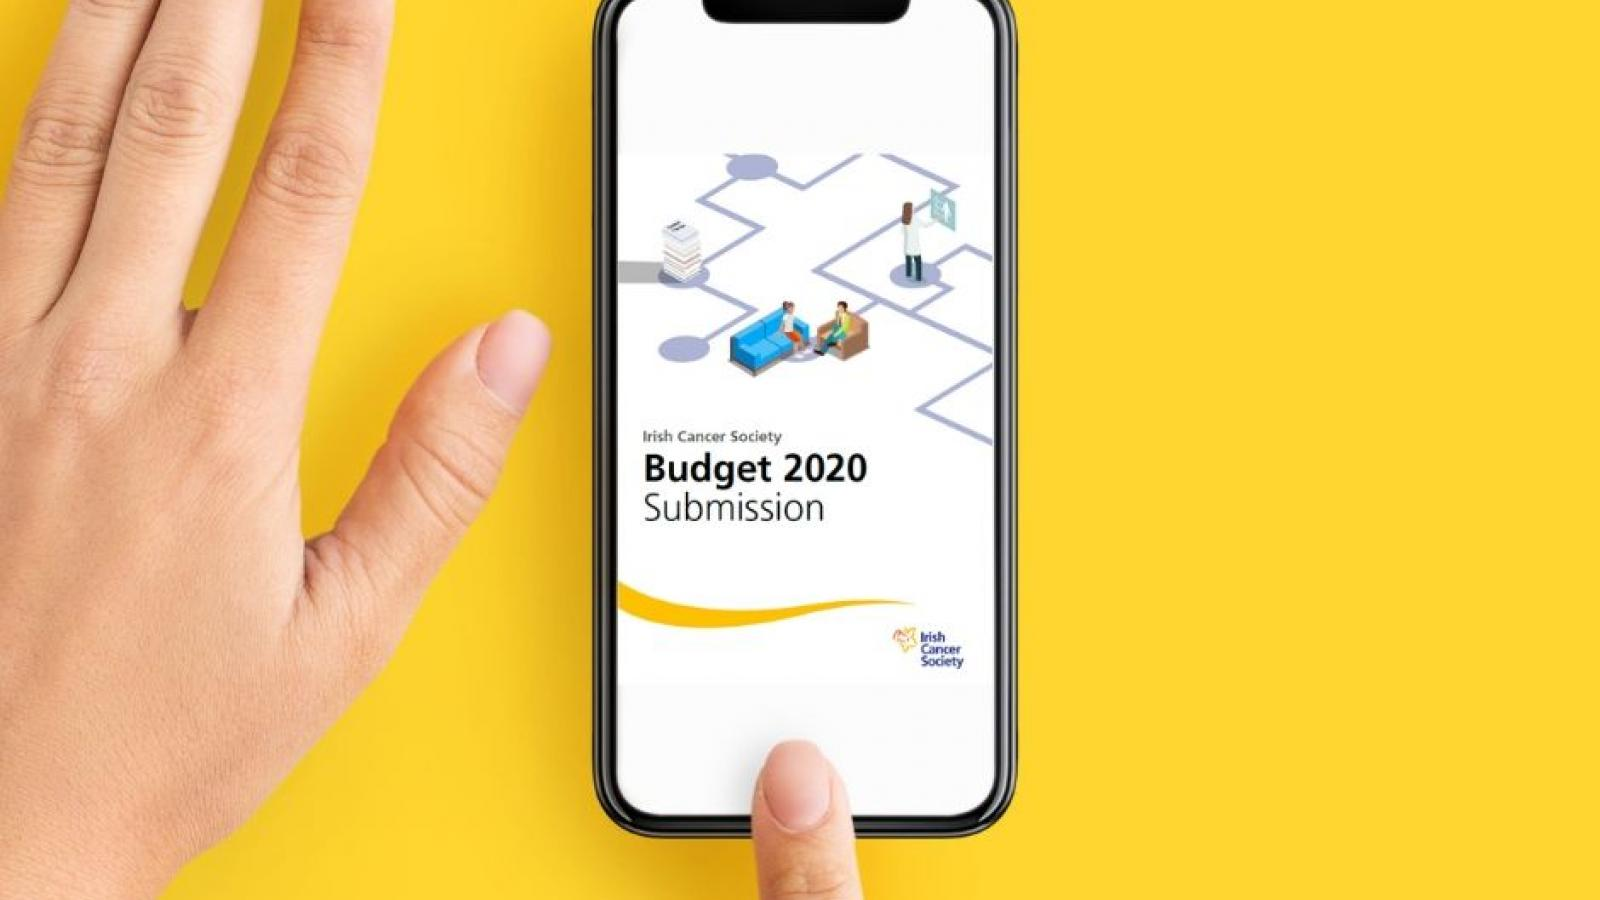 Smartphone screen showing Irish Cancer Society Budget 2020 Submission document